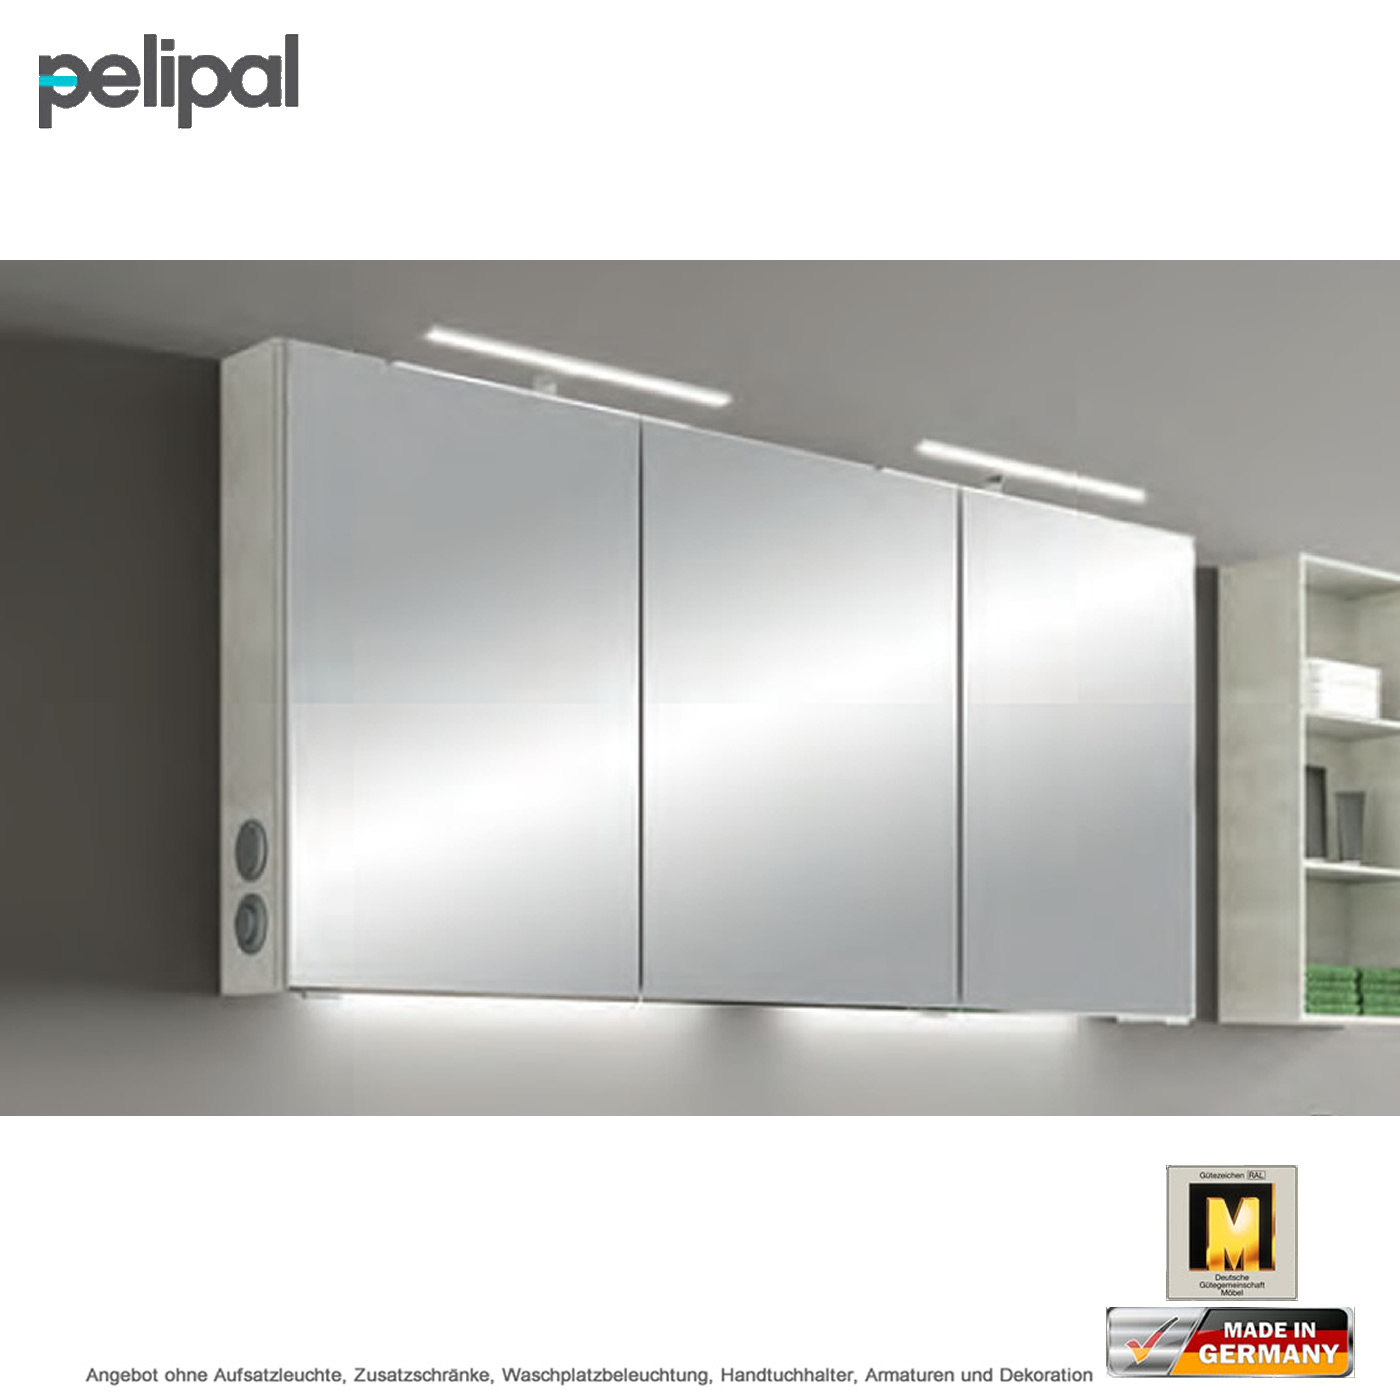 pelipal solitaire 6005 spiegelschrank 140 cm inklusive led. Black Bedroom Furniture Sets. Home Design Ideas